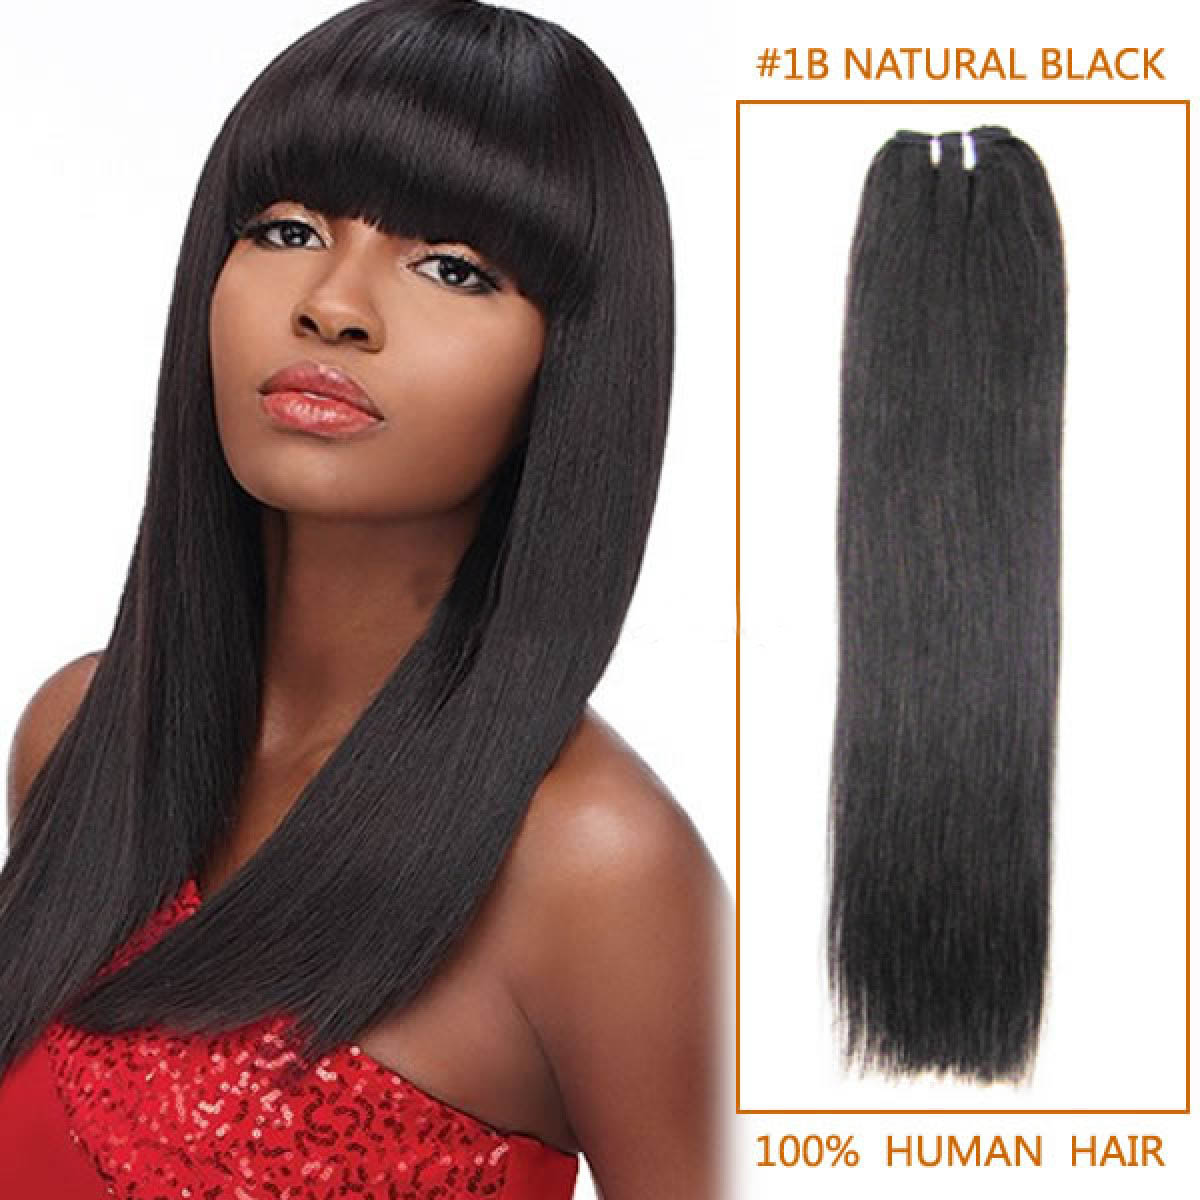 16 Inch  1b Natural Black Straight Indian Remy Hair Wefts 6f274f3de323